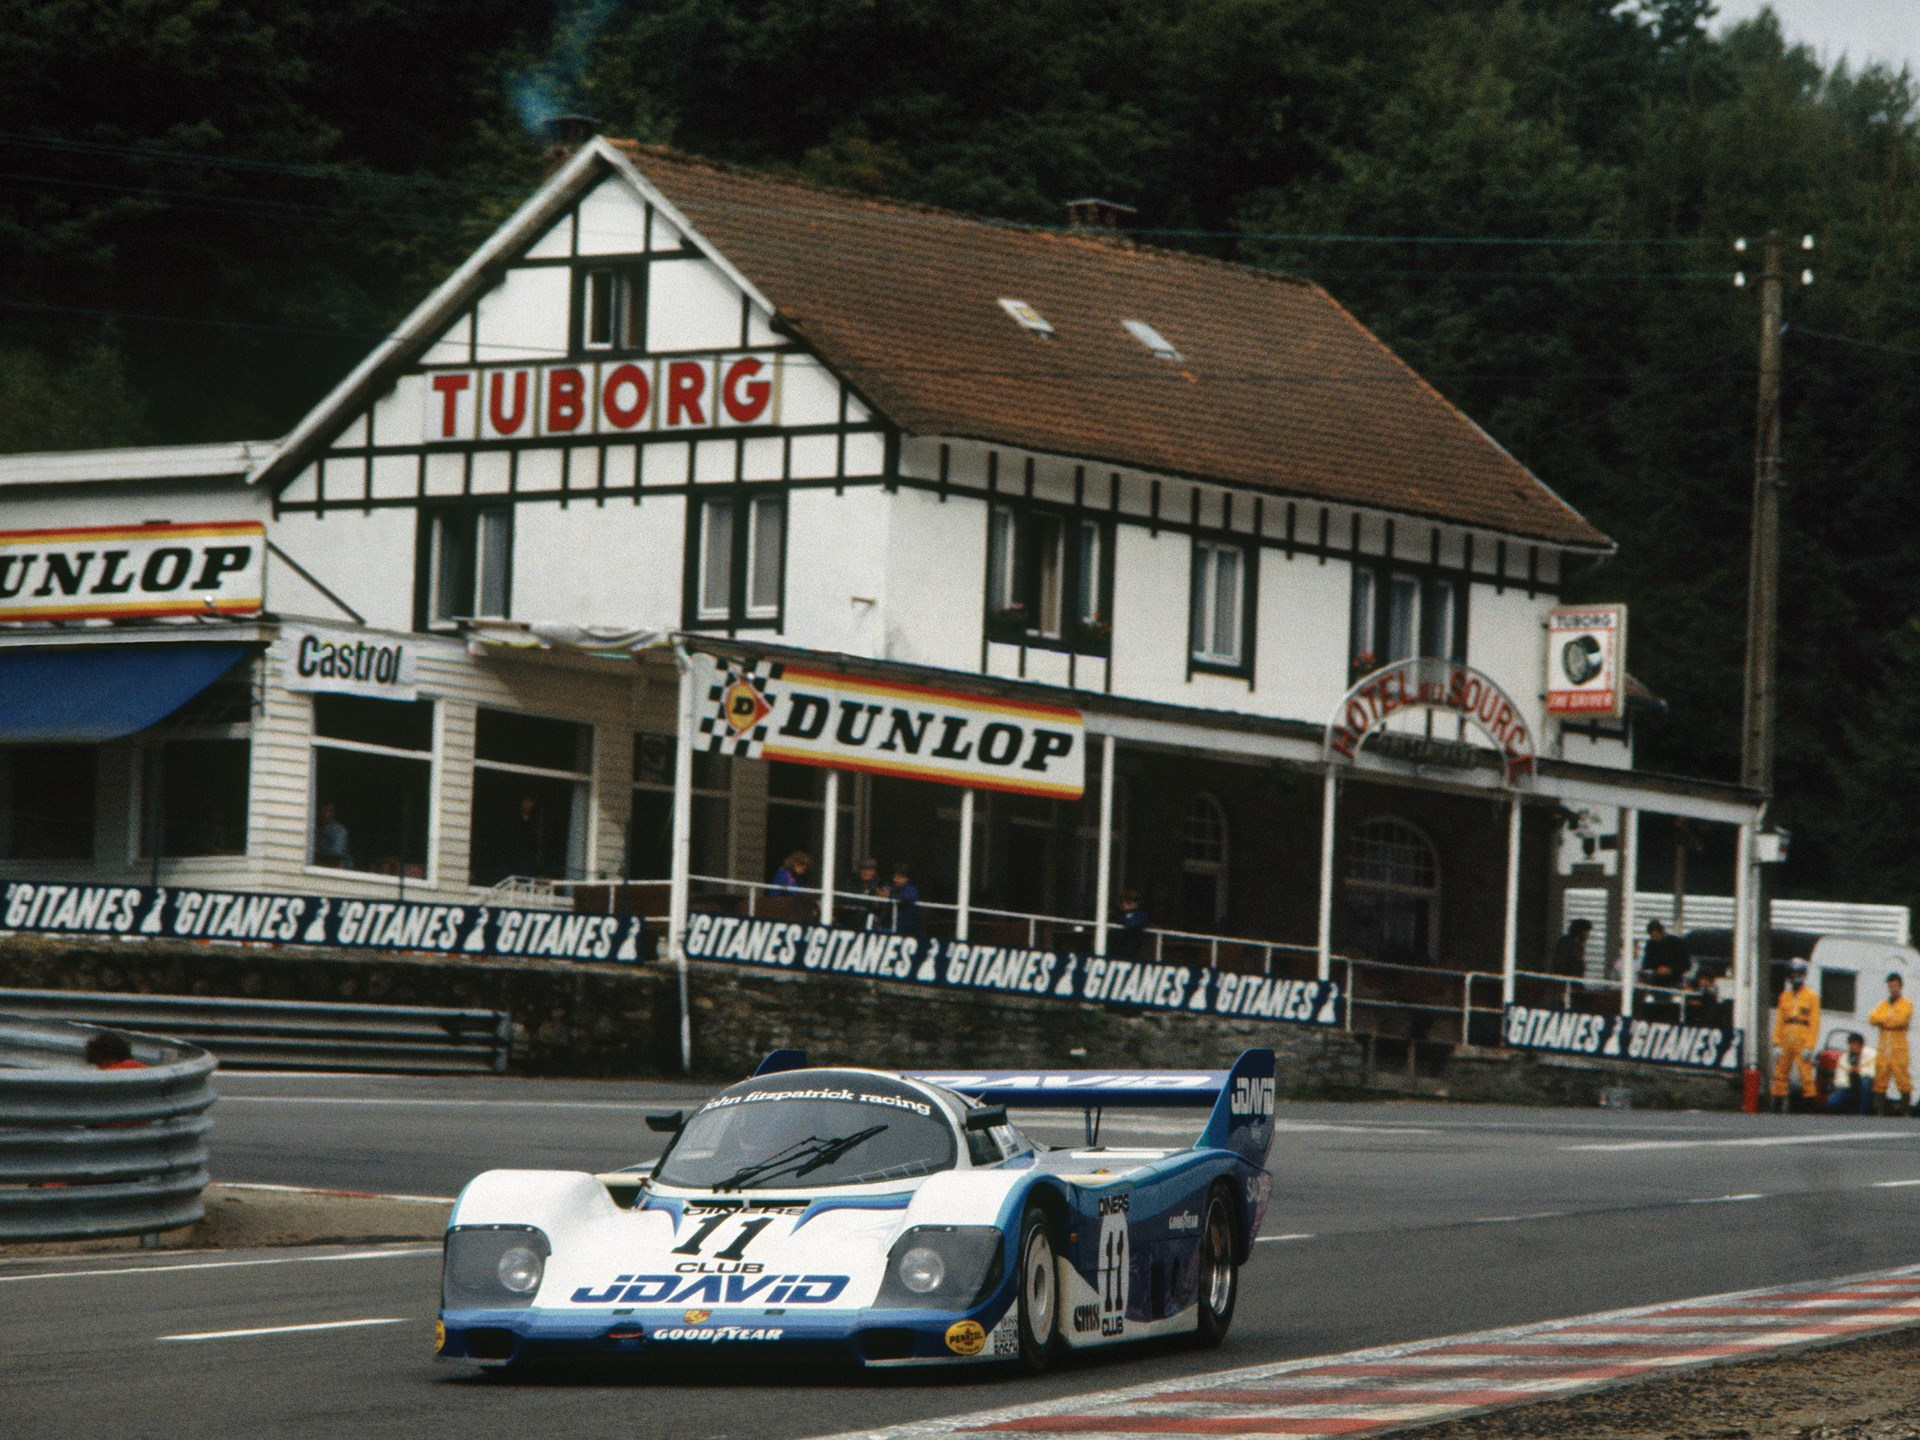 Chassis no. 956-110 at Spa-Francorchamps in 1983.